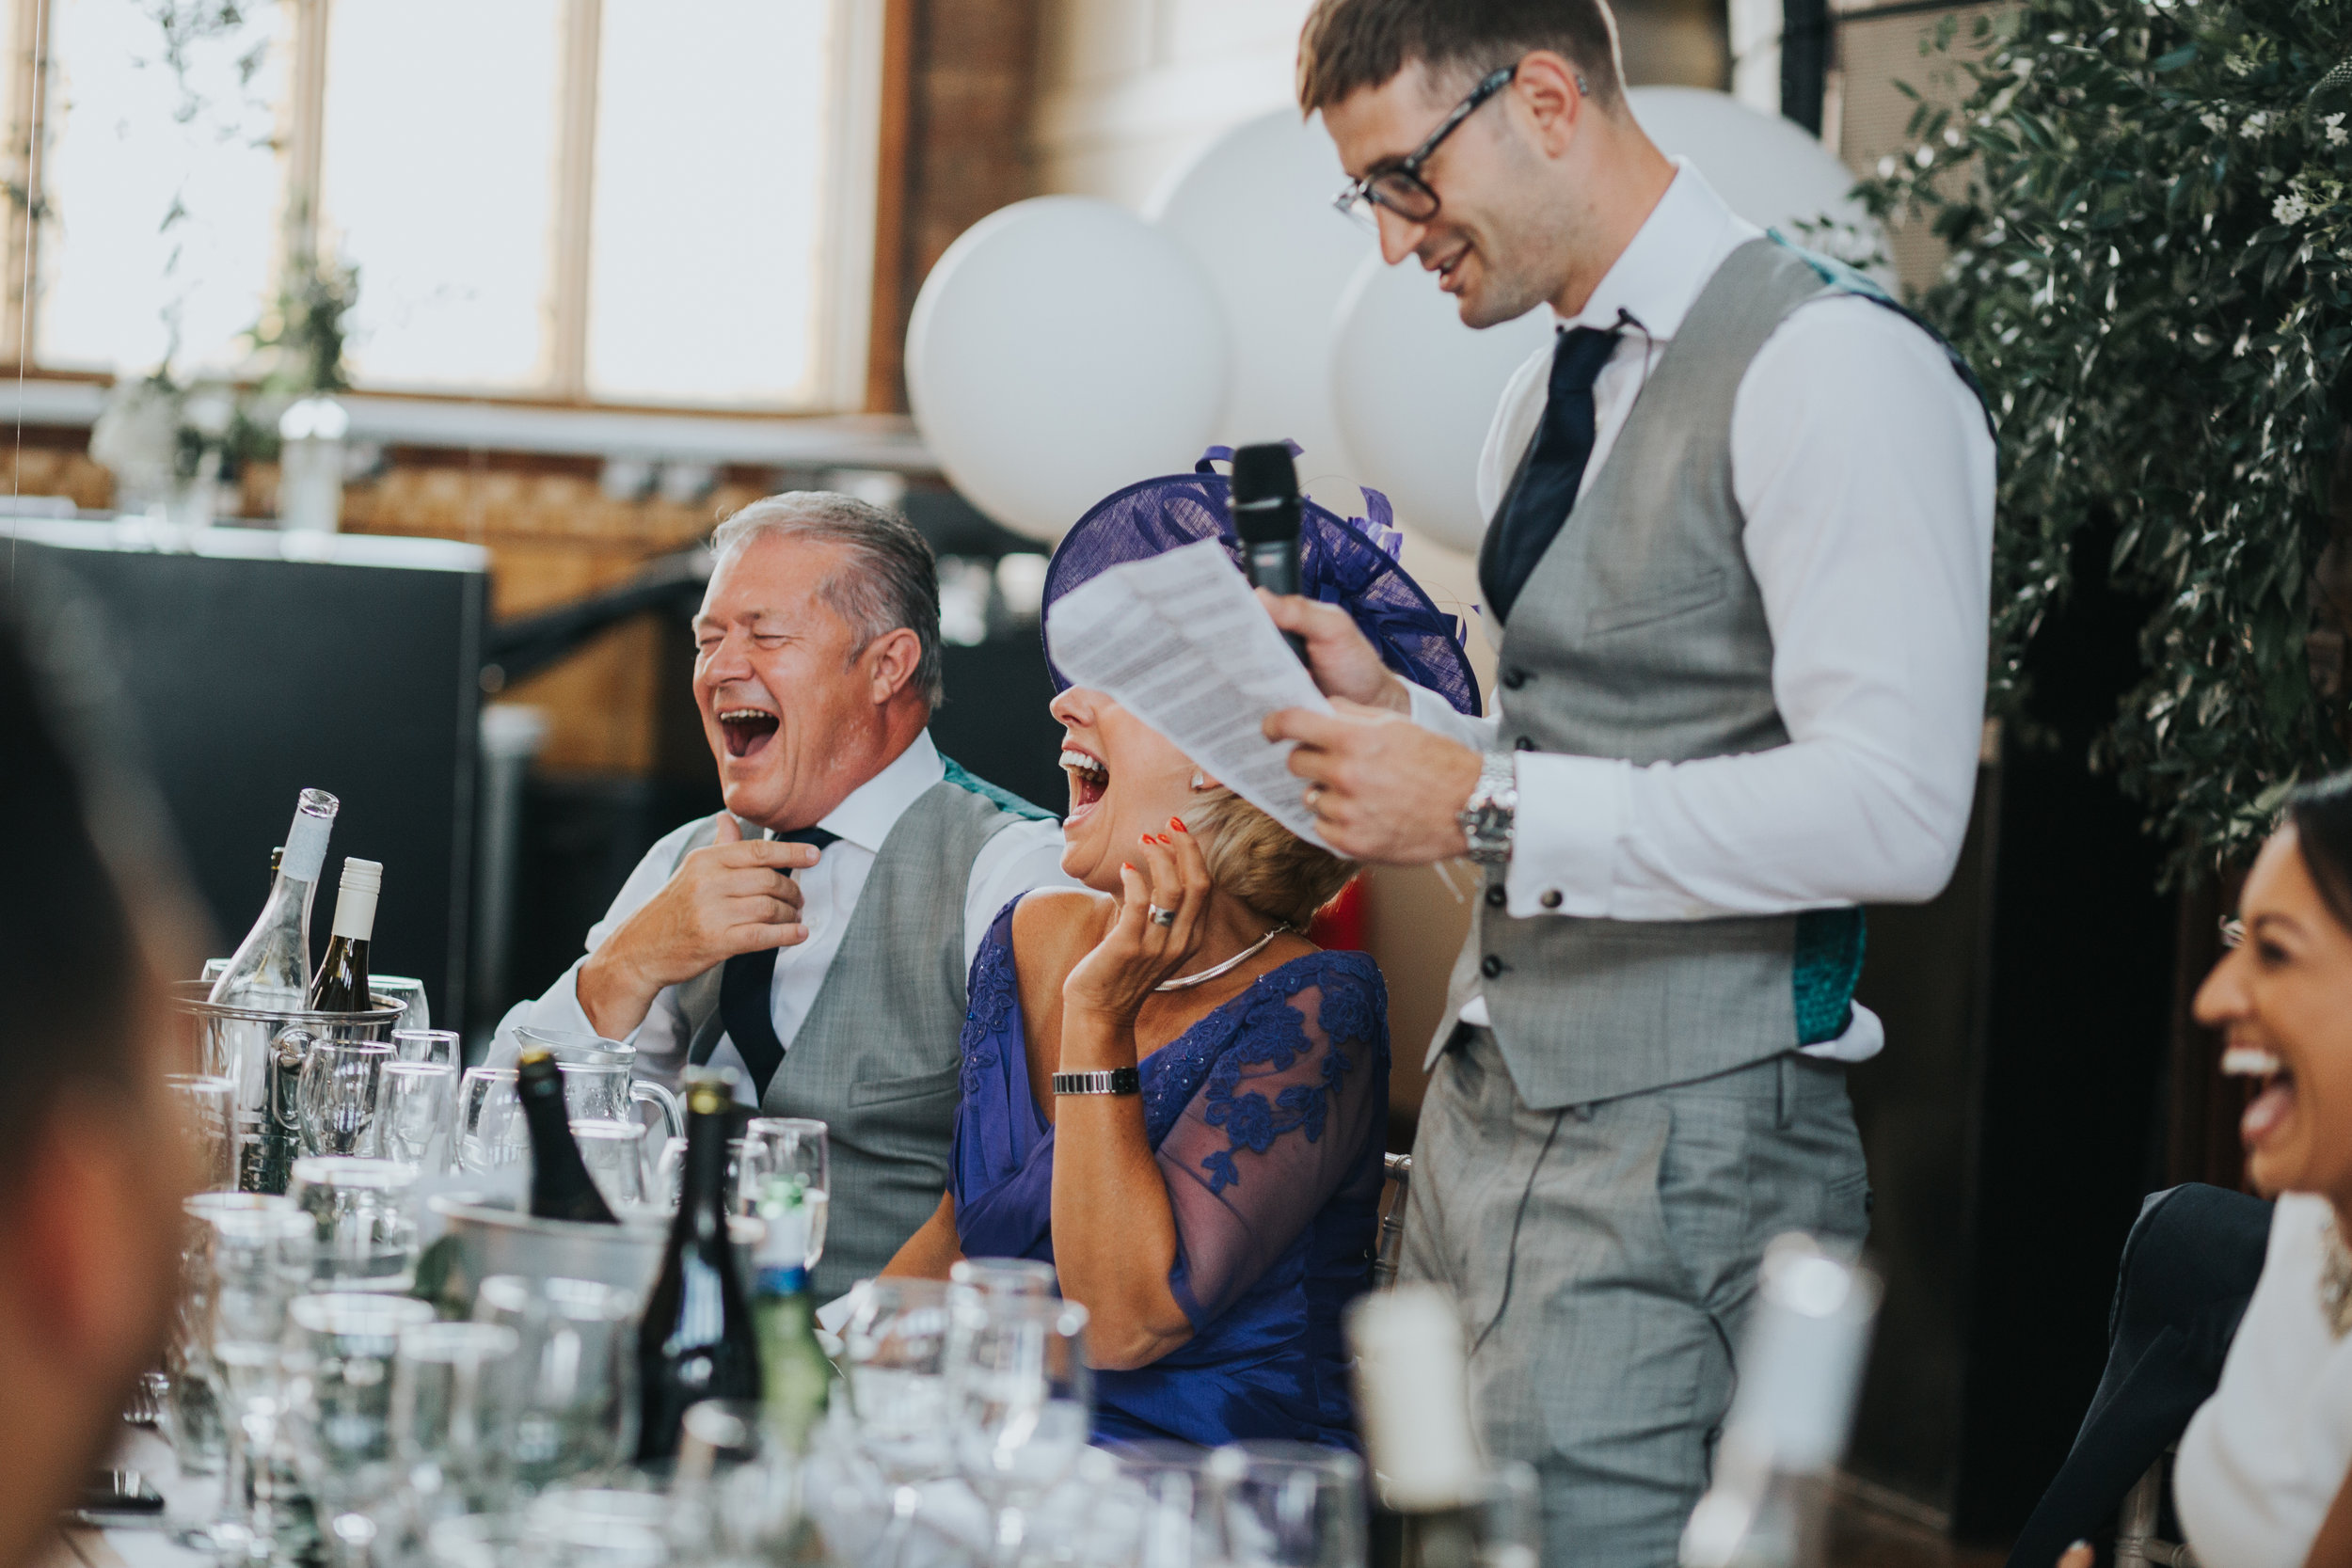 Groom makes his speech as his parents laugh.